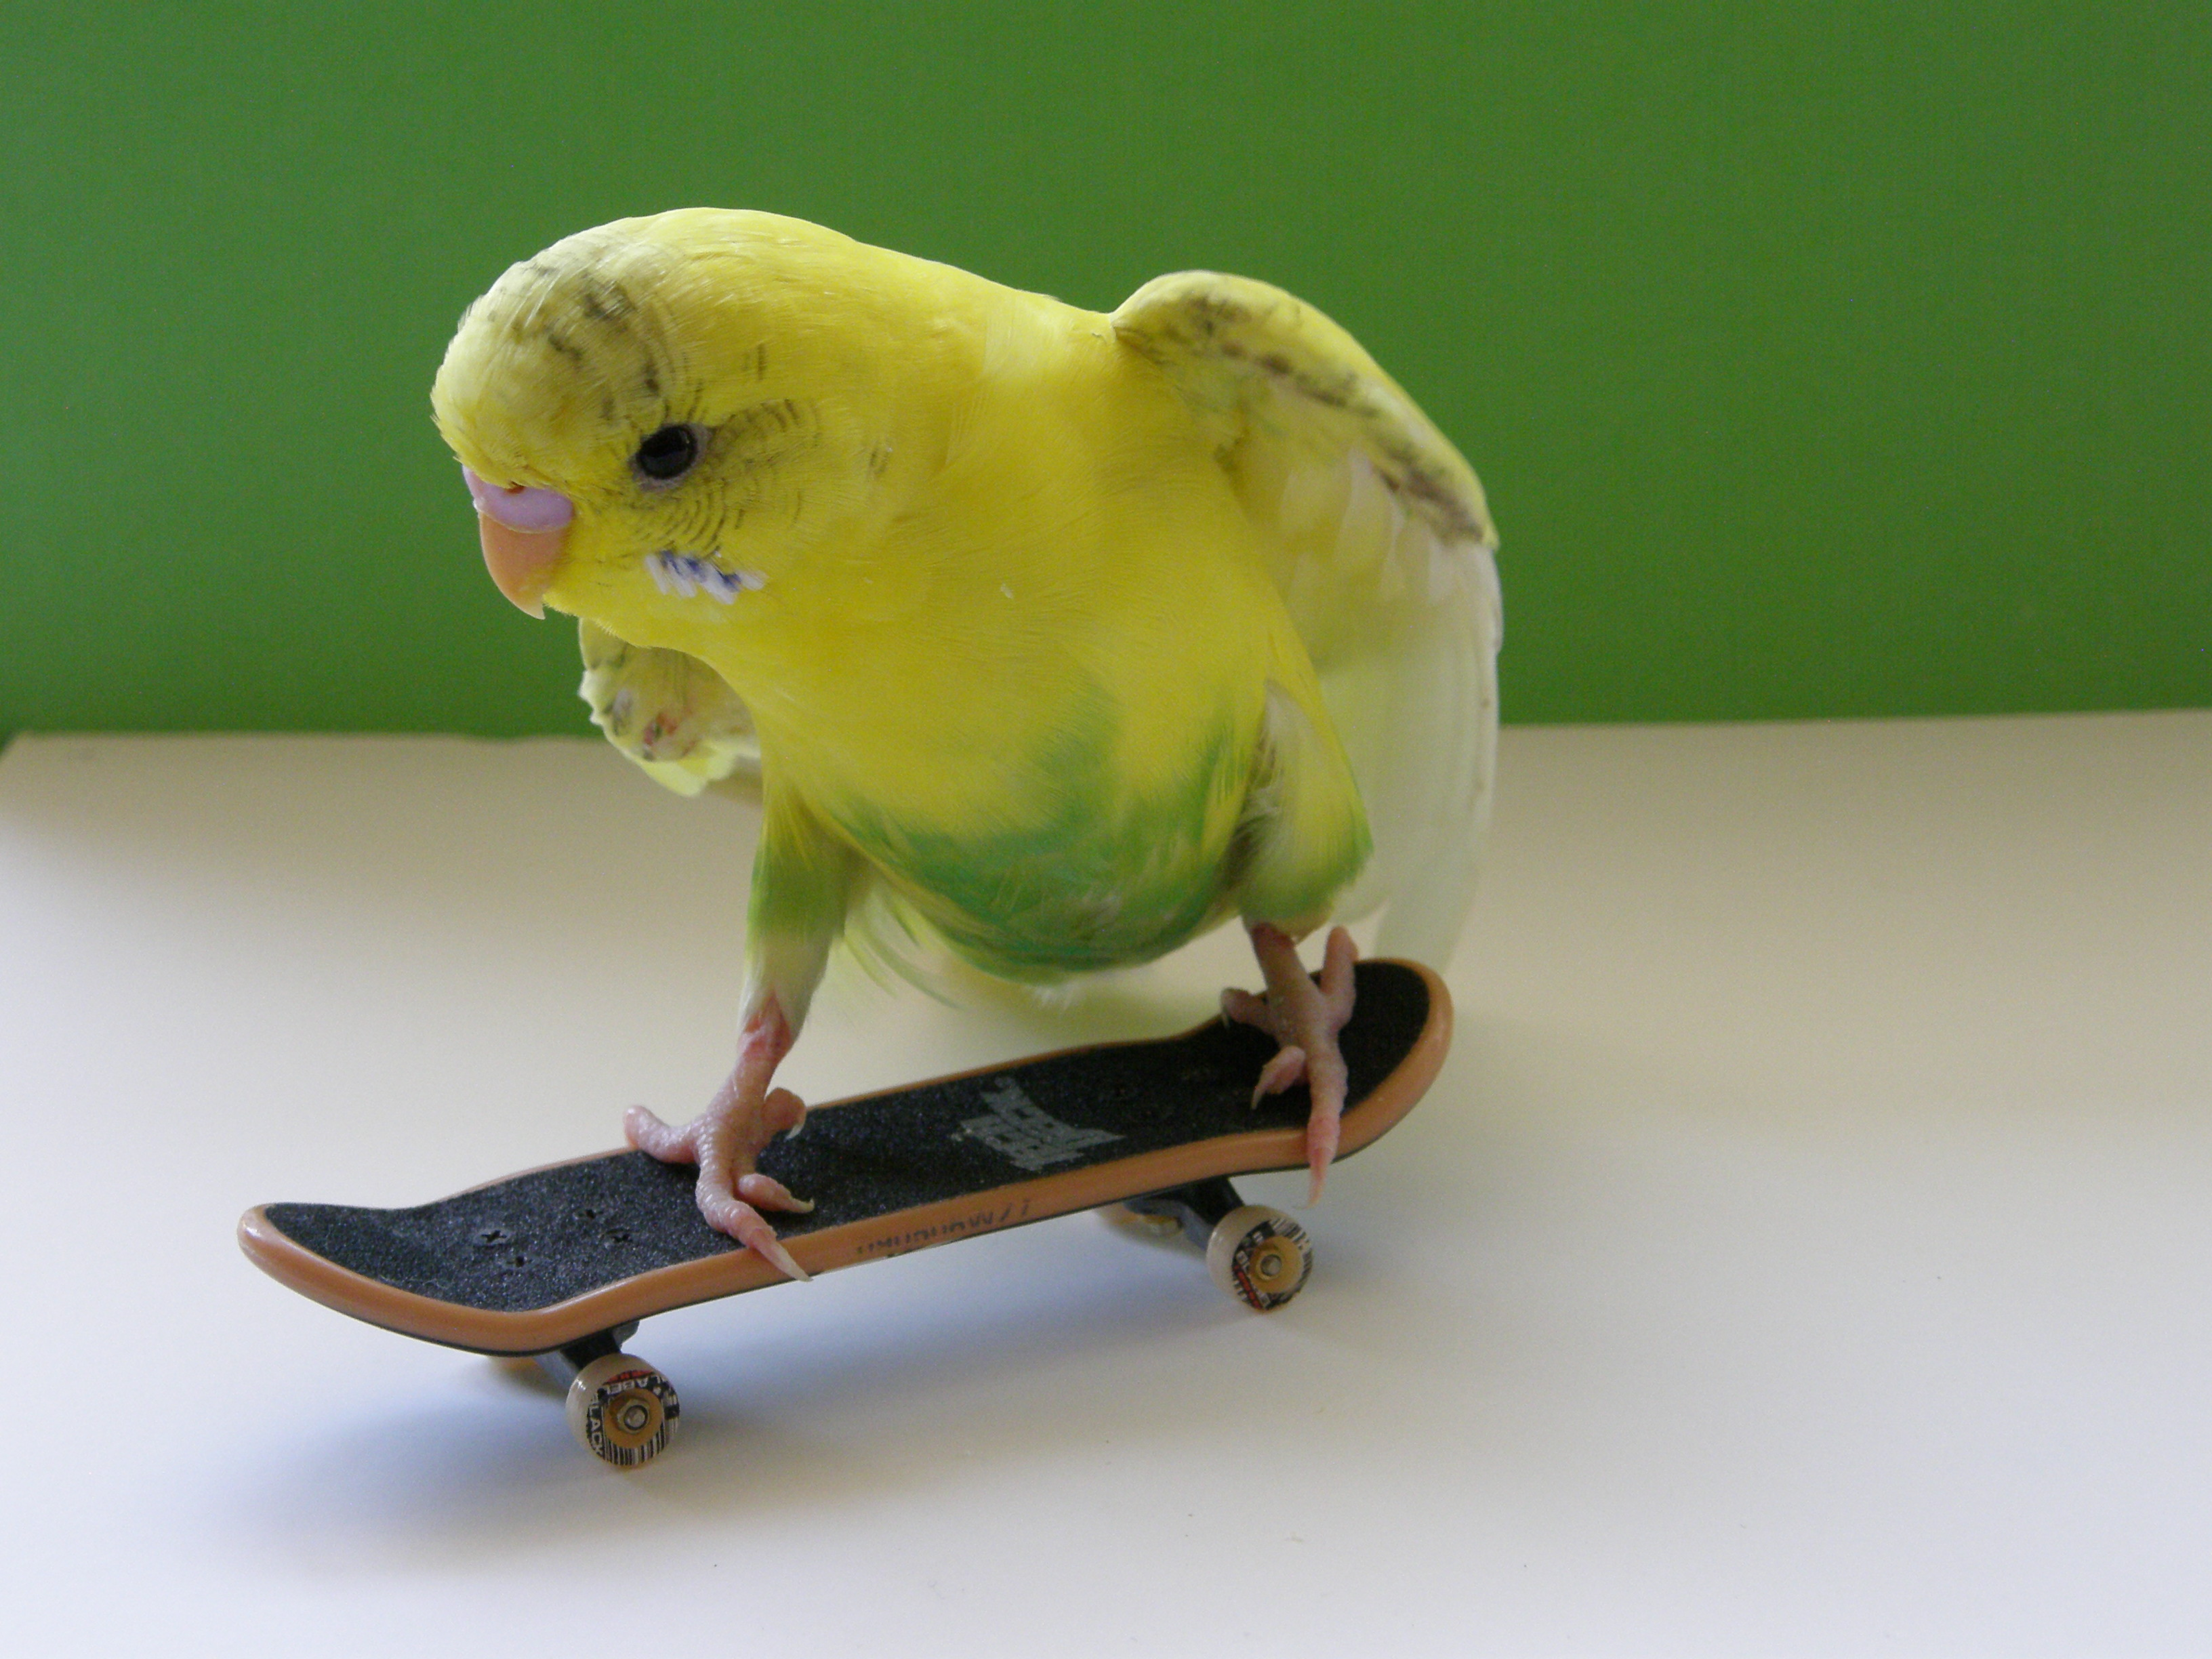 Cute Cockatiel Wallpaper Skateboarding Budgies Triestevisier